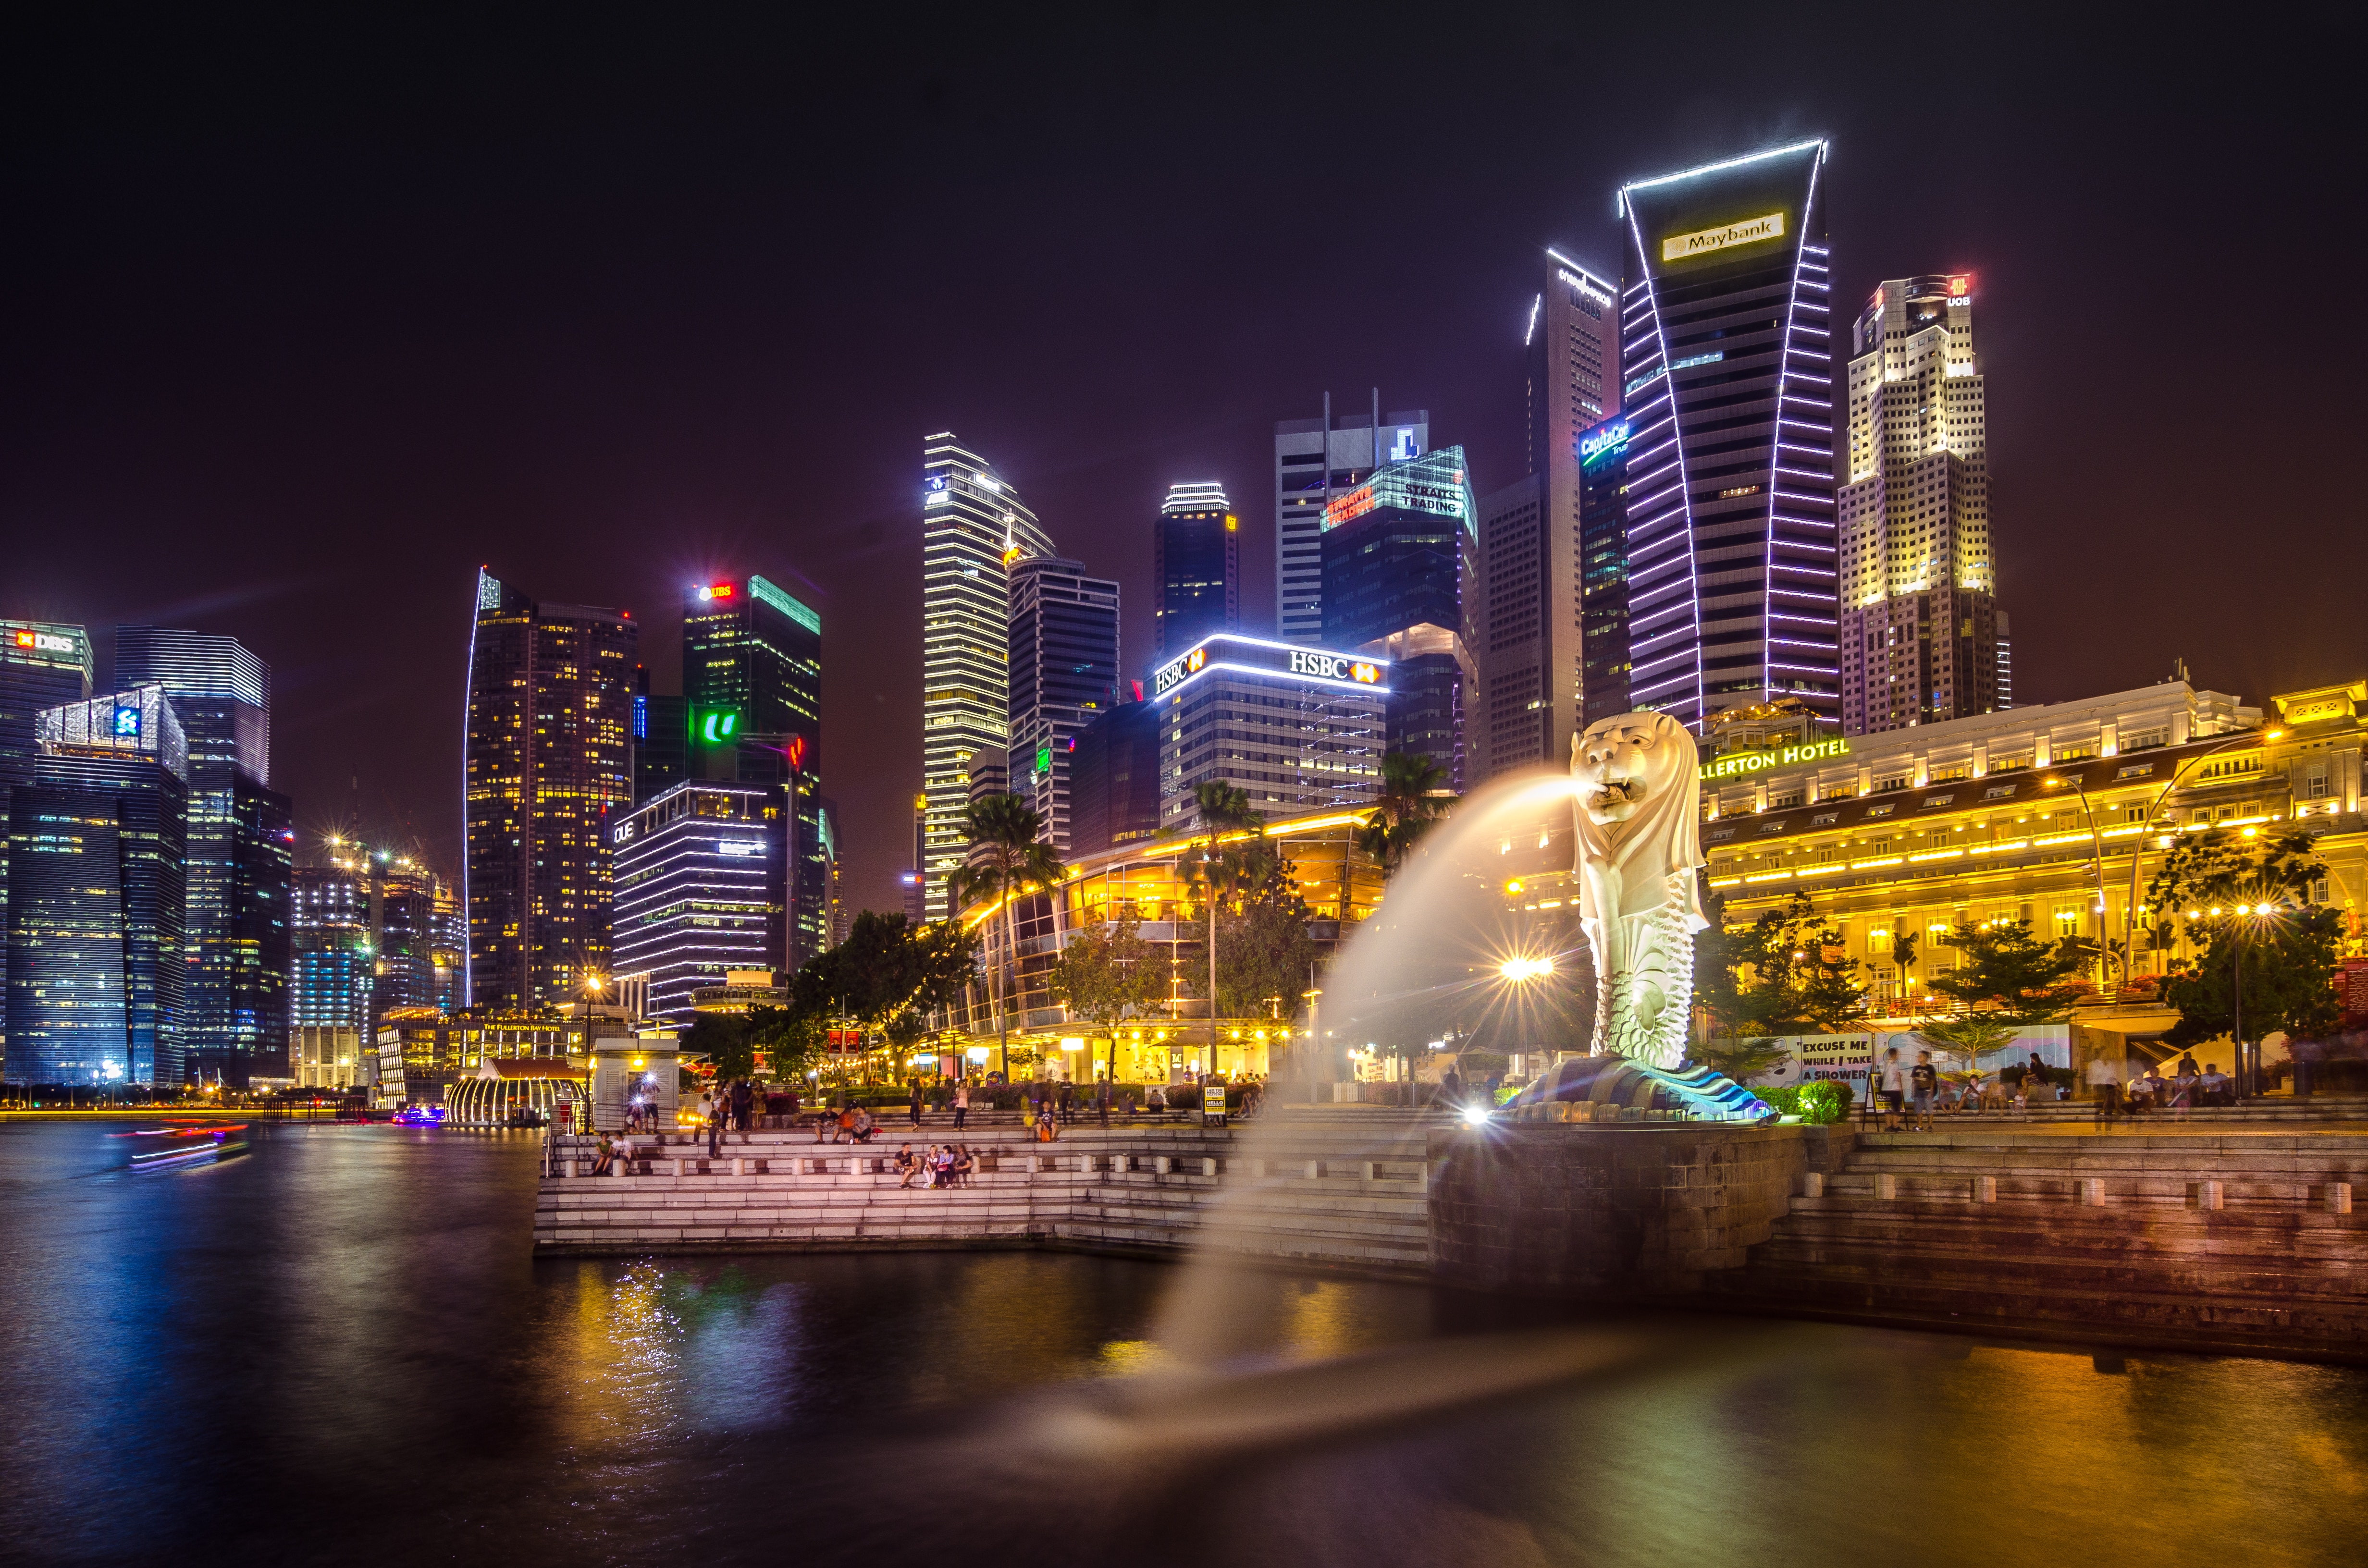 Flight Deal Round Trip From Los Angeles Area to Singapore #losangeles #singapore